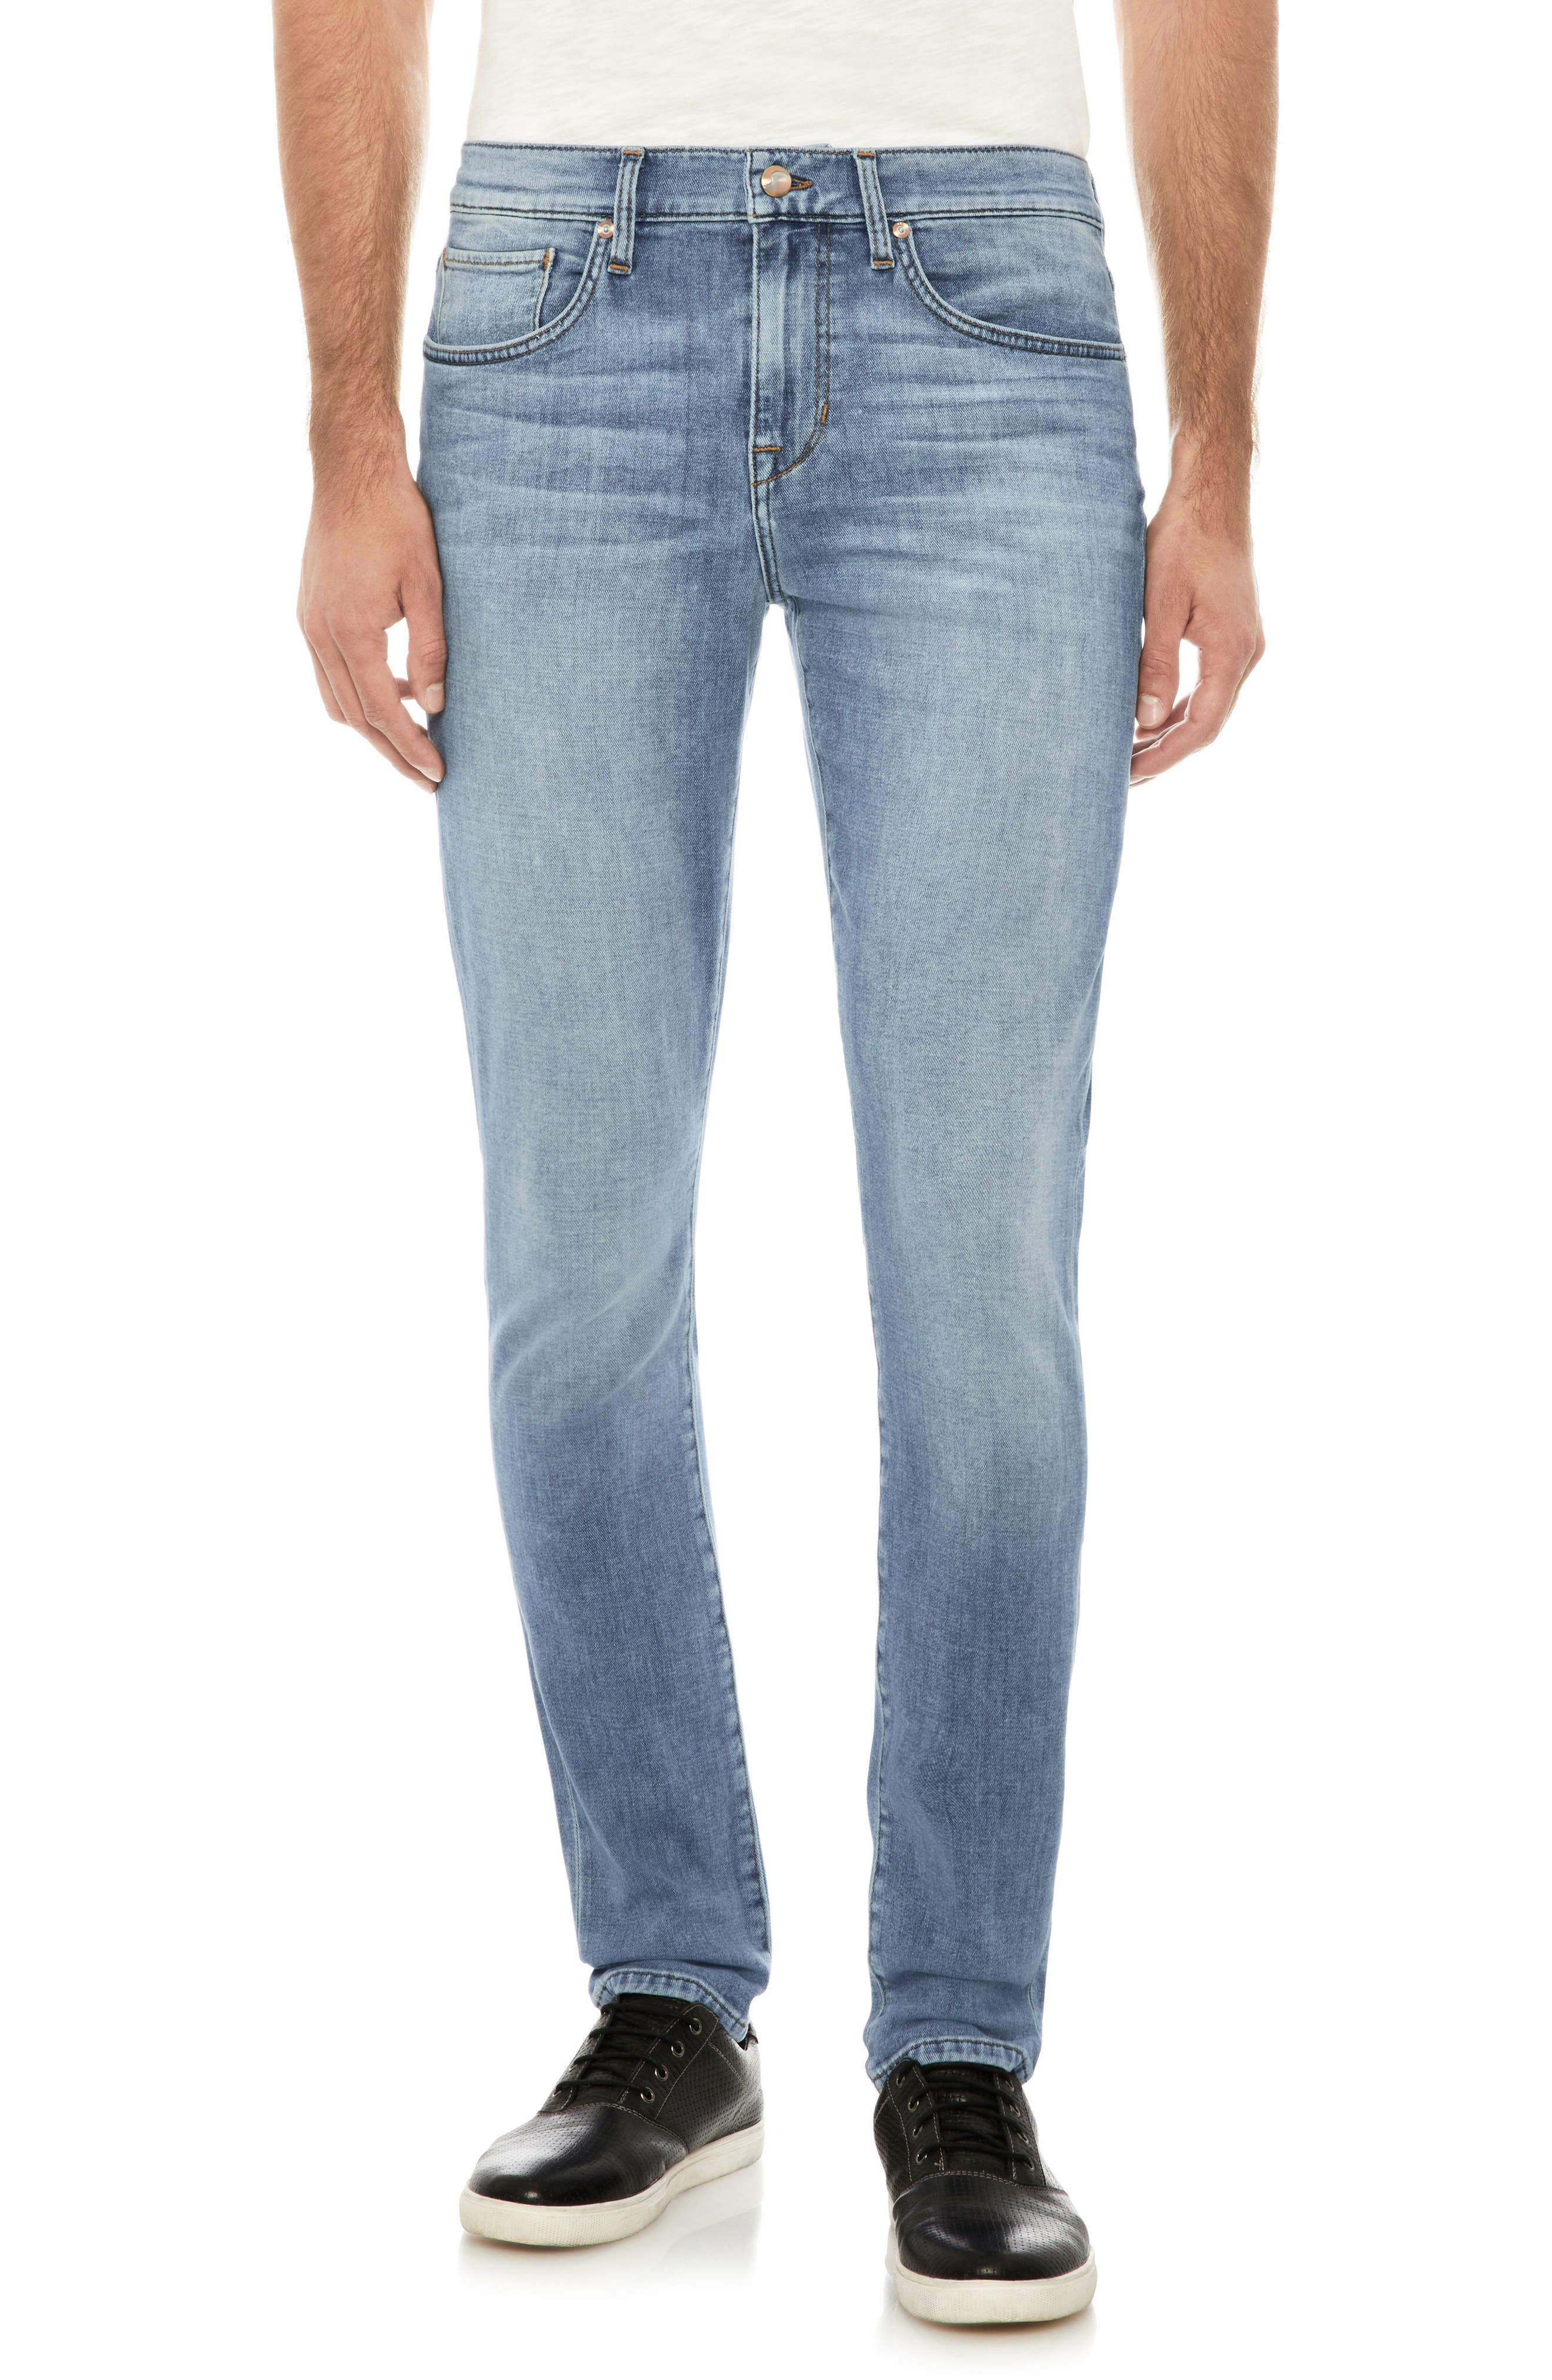 Legend Skinny Fit Jeans,                         Main,                         color, Avery